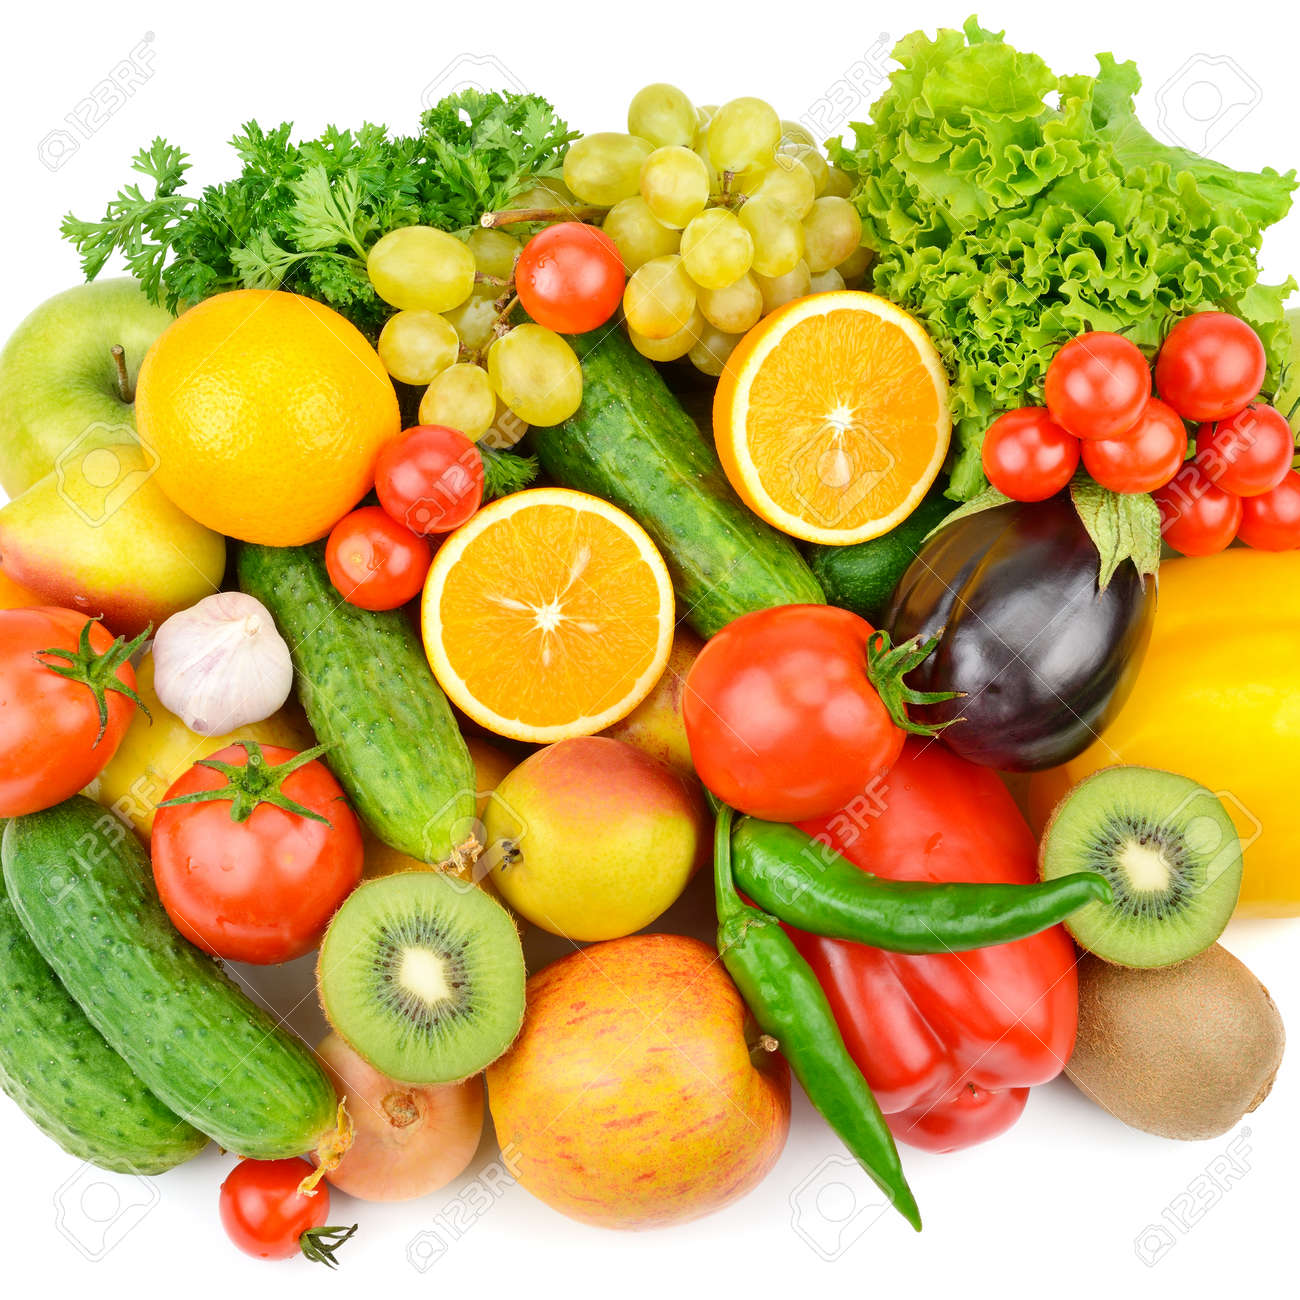 Fruits and vegetables isolated on a white background. Healthy food. Flat lay,top view. - 135670227